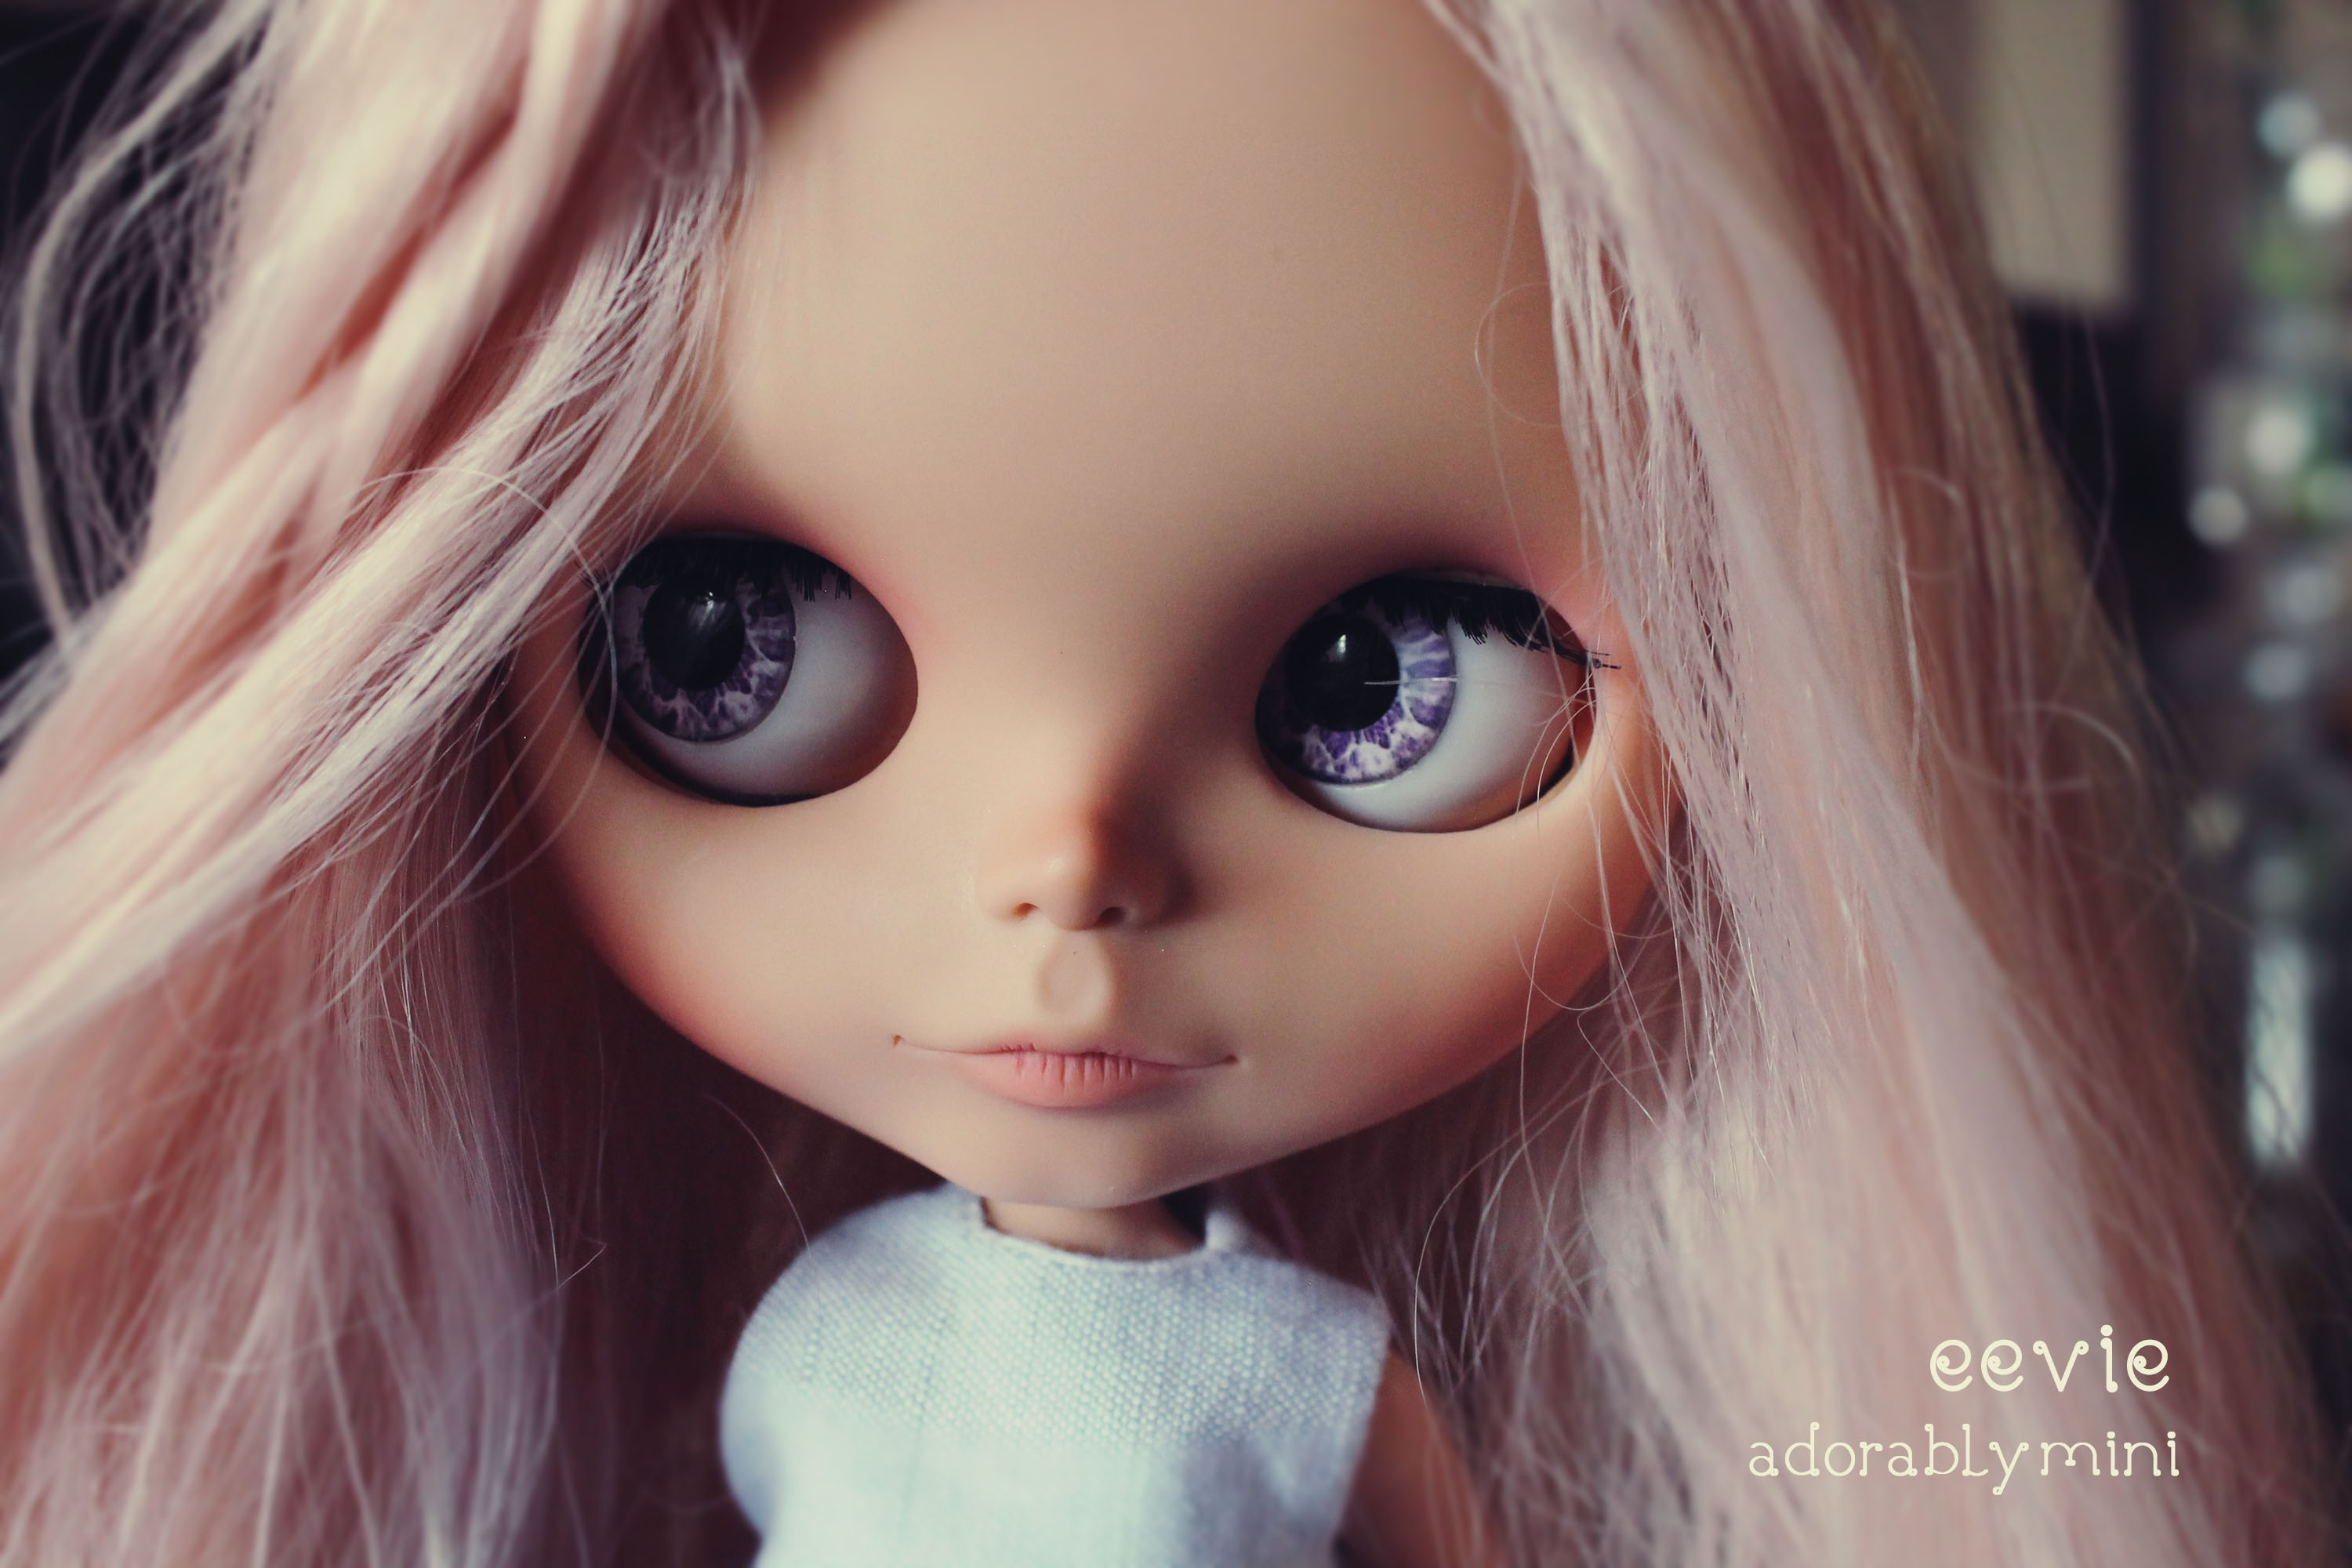 eevie custom blythe doll